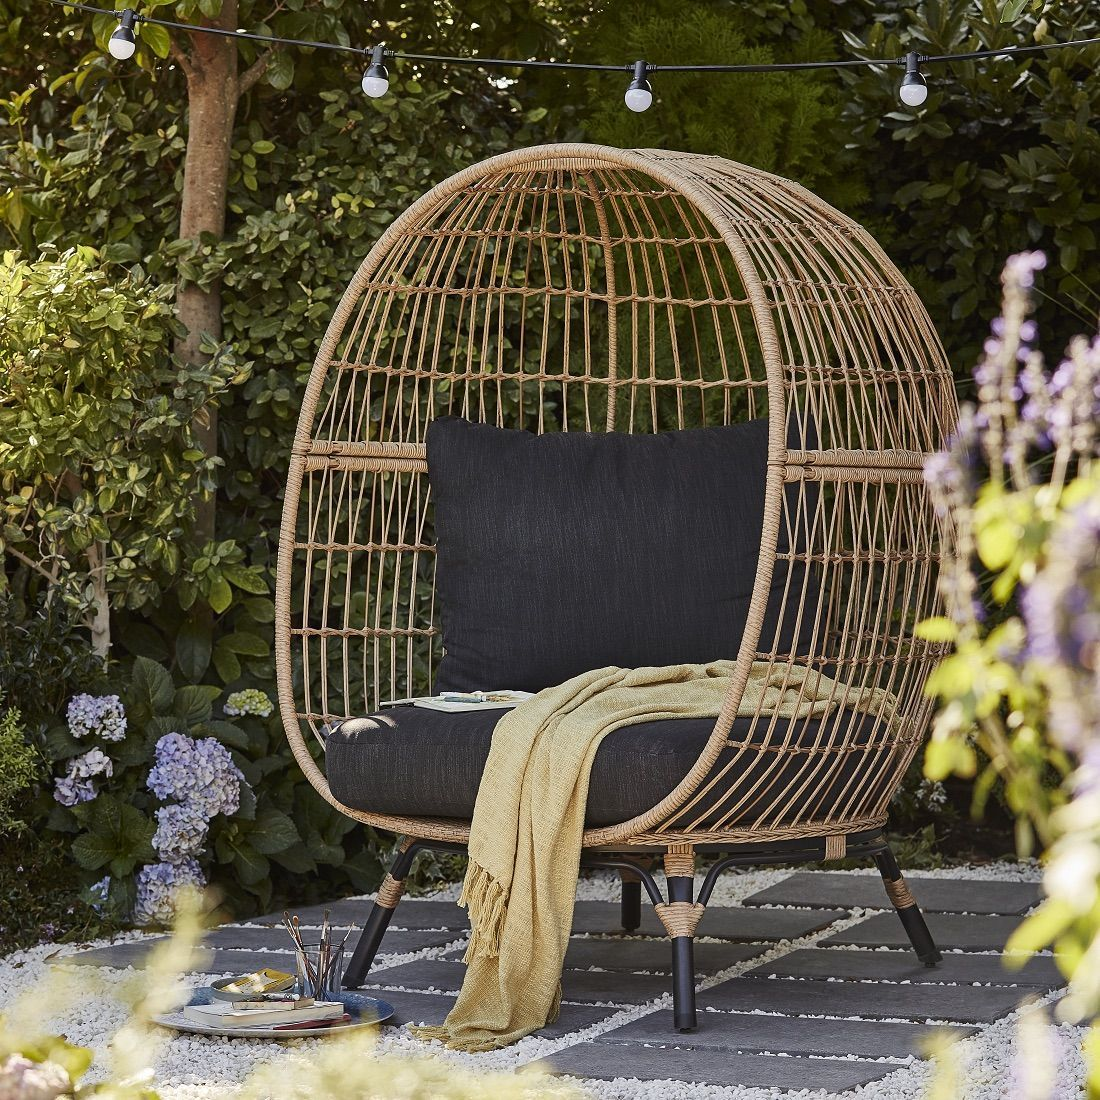 B Q Launches Insta Worthy Egg Chair And It S Perfect For Sprucing Up Your Outdoor Space In 2020 Garden Chairs B Q Garden Furniture Outdoor Space